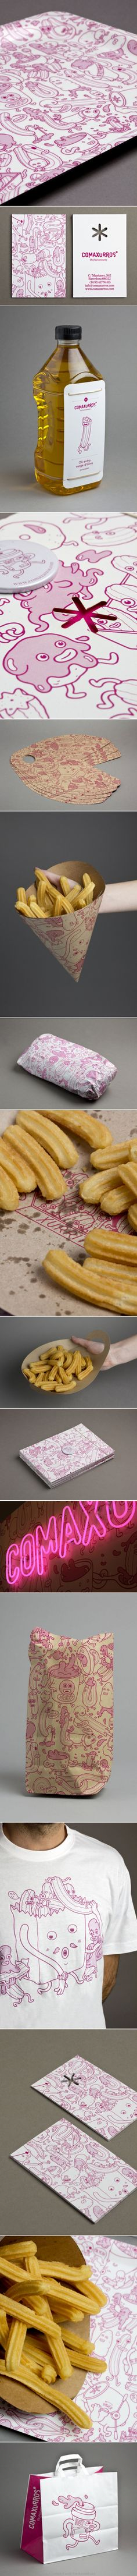 Comaxurros its a new concept of xurreria. A churro, sometimes referred to as a Spanish doughnut #packaging #branding PD - created via http://pinthemall.net